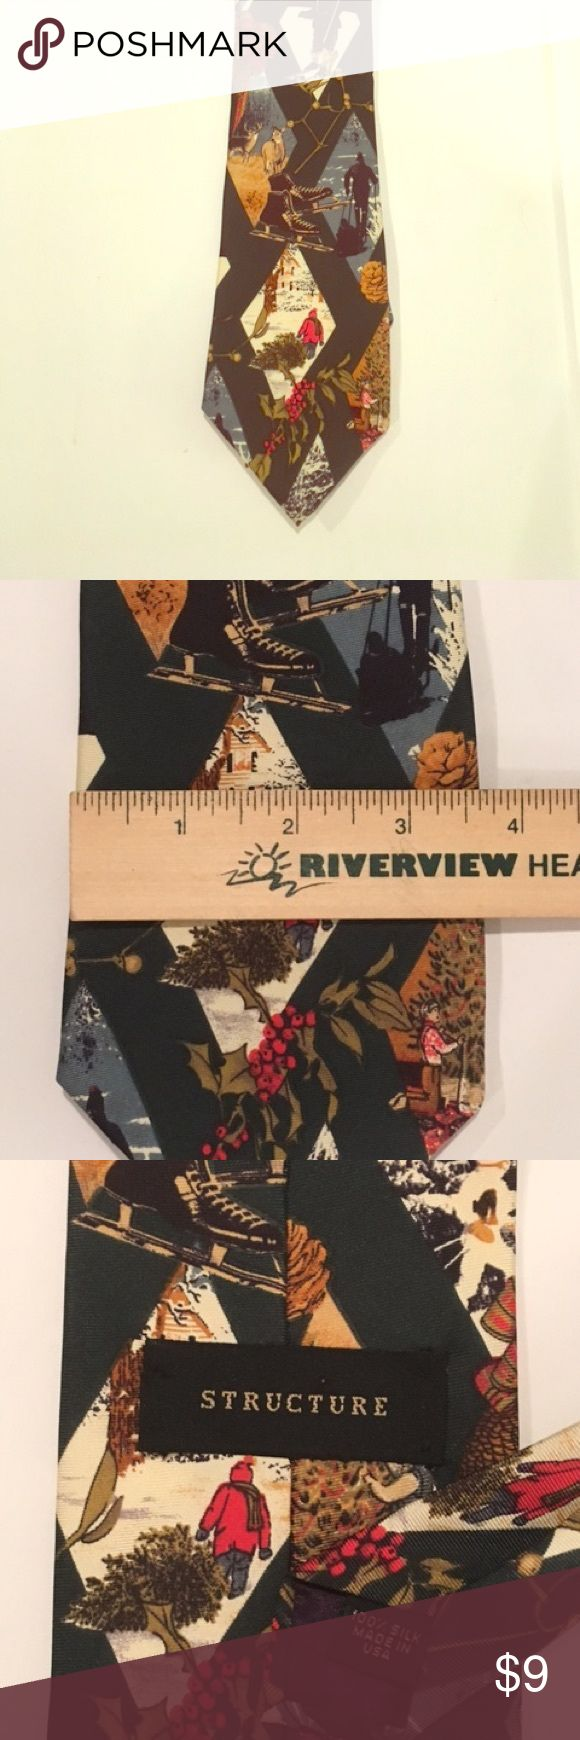 Beautiful Men's Structure Holiday Silk Tie This is a beautiful handmade 100% silk tie from the brand Structure. Holiday design, it's perfect for the upcoming festivities. A must have for the collection. Accepting offers. Thank you. Structure Accessories Ties